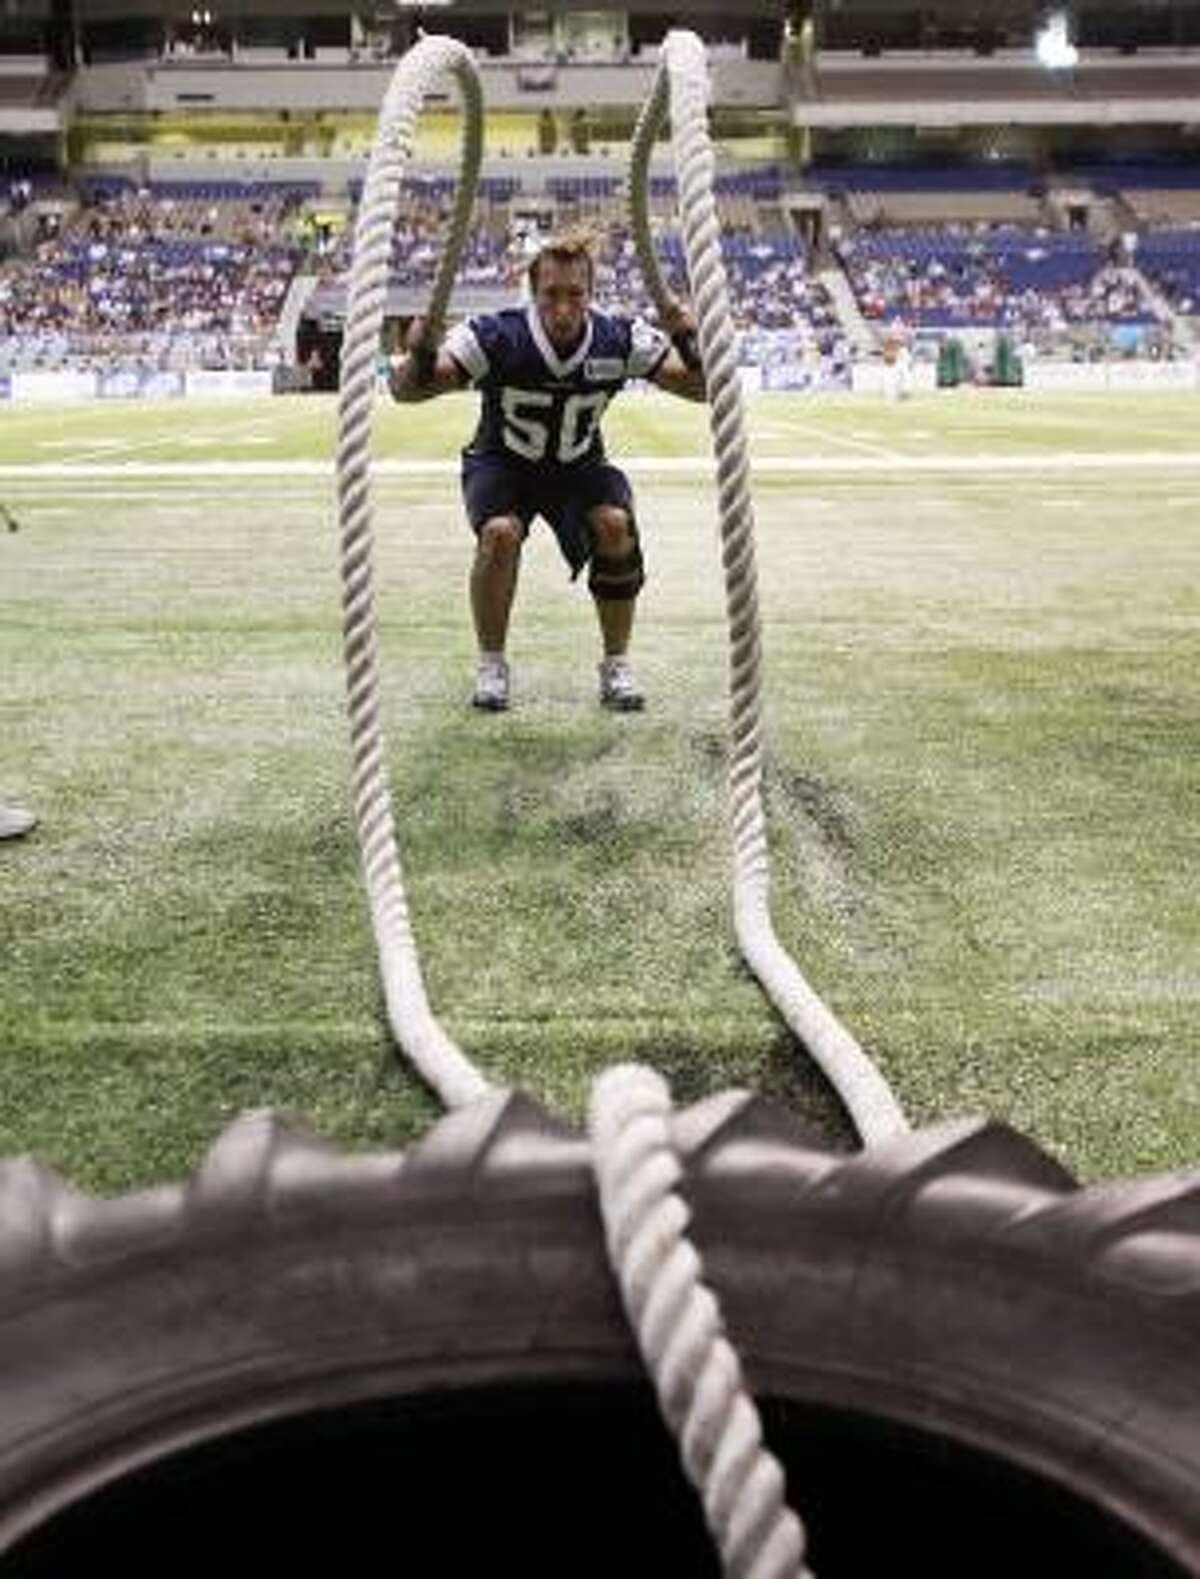 Dallas Cowboys' Sean Lee works with heavy ropes during the team's NFL football training camp, Tuesday, Aug. 3, 2010, in San Antonio.